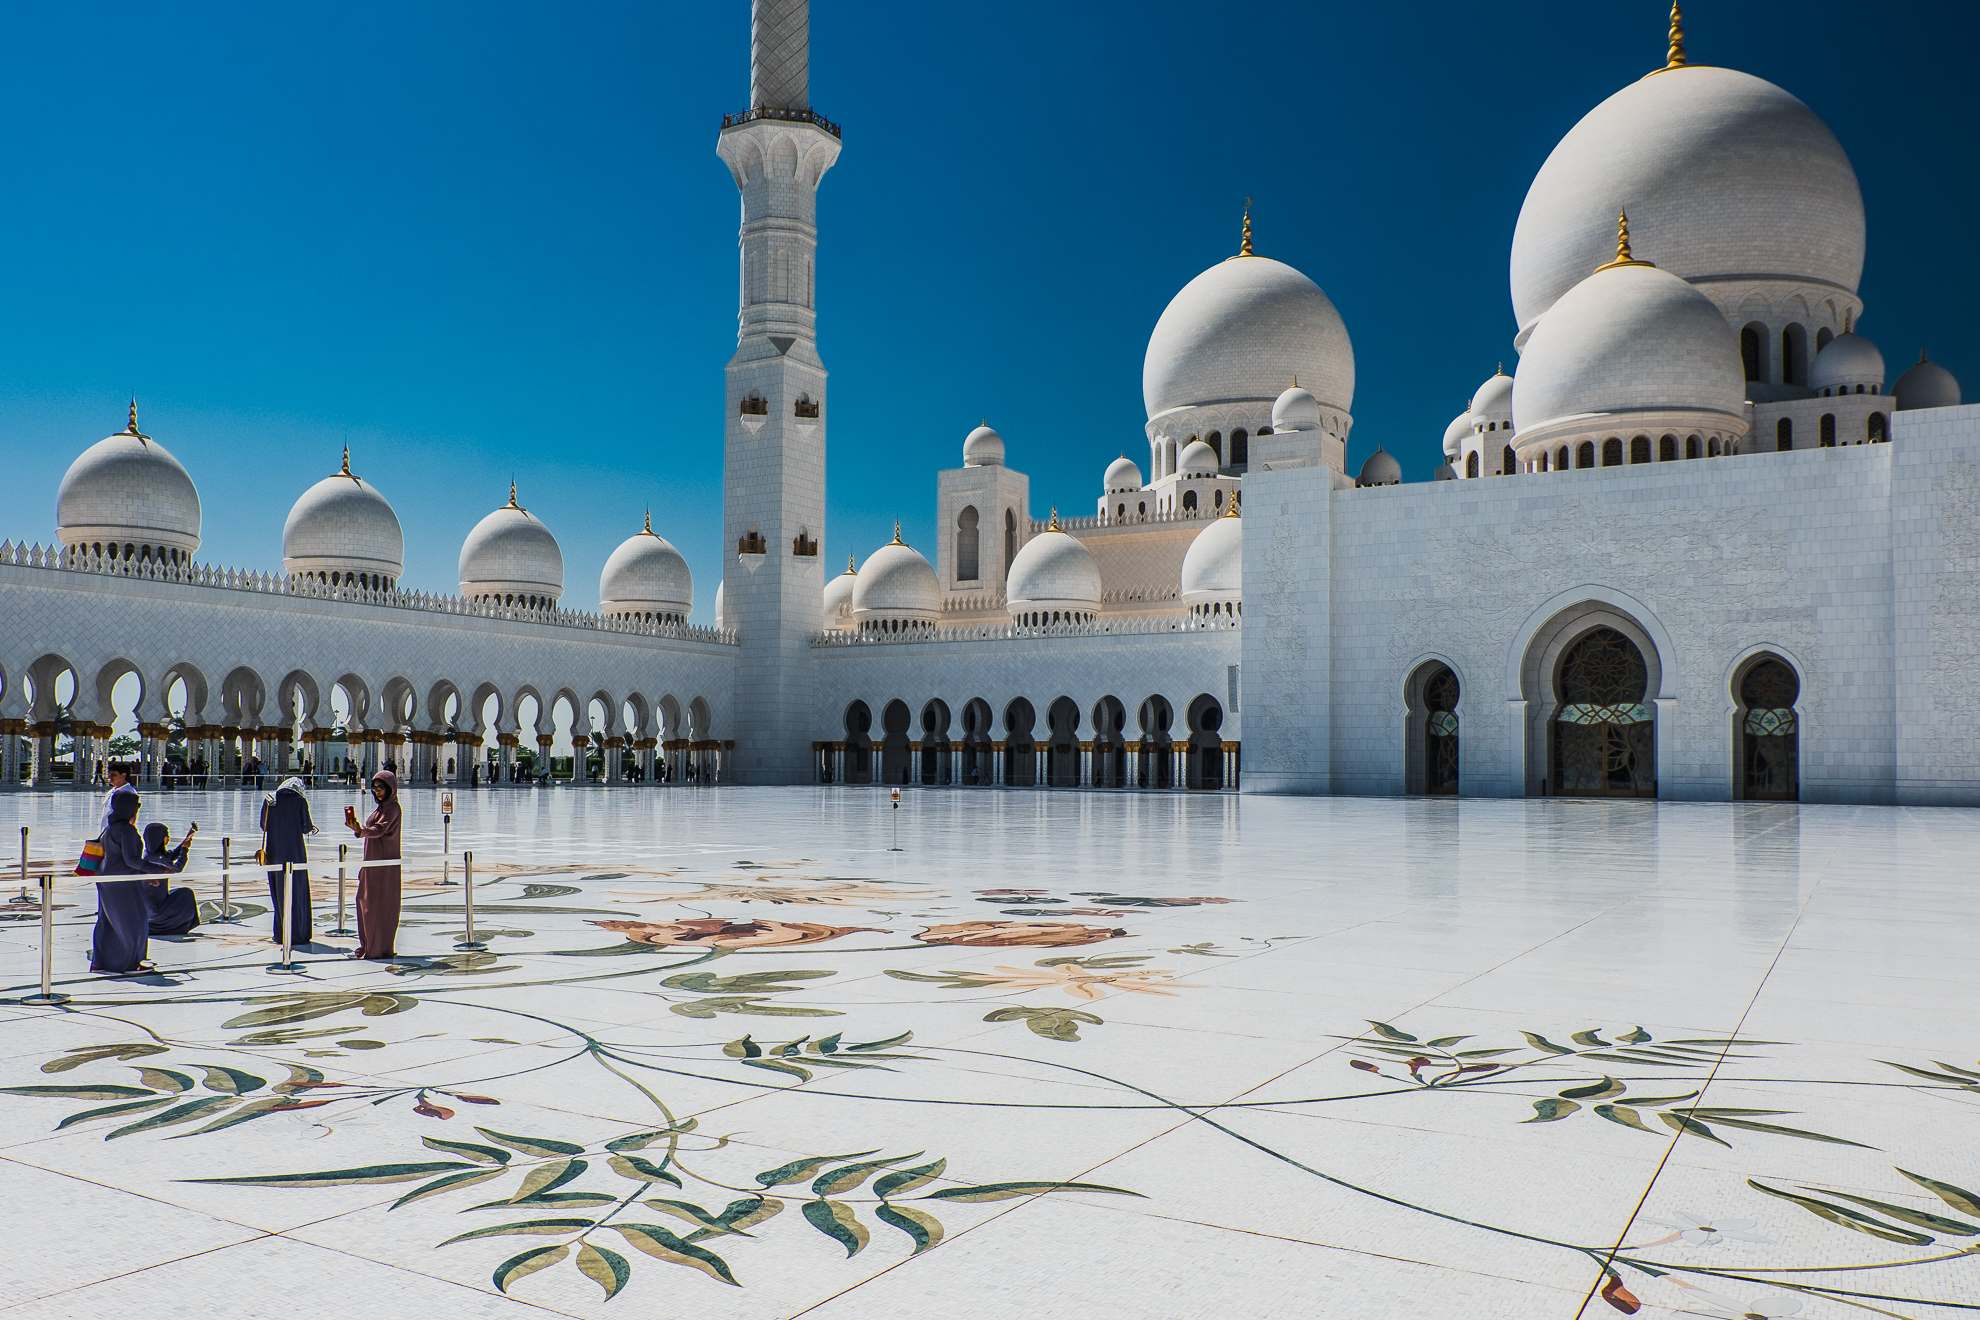 sheikh zayed grand mosque4 Picturesque Sheikh Zayed Grand Mosque in Abu Dhabi